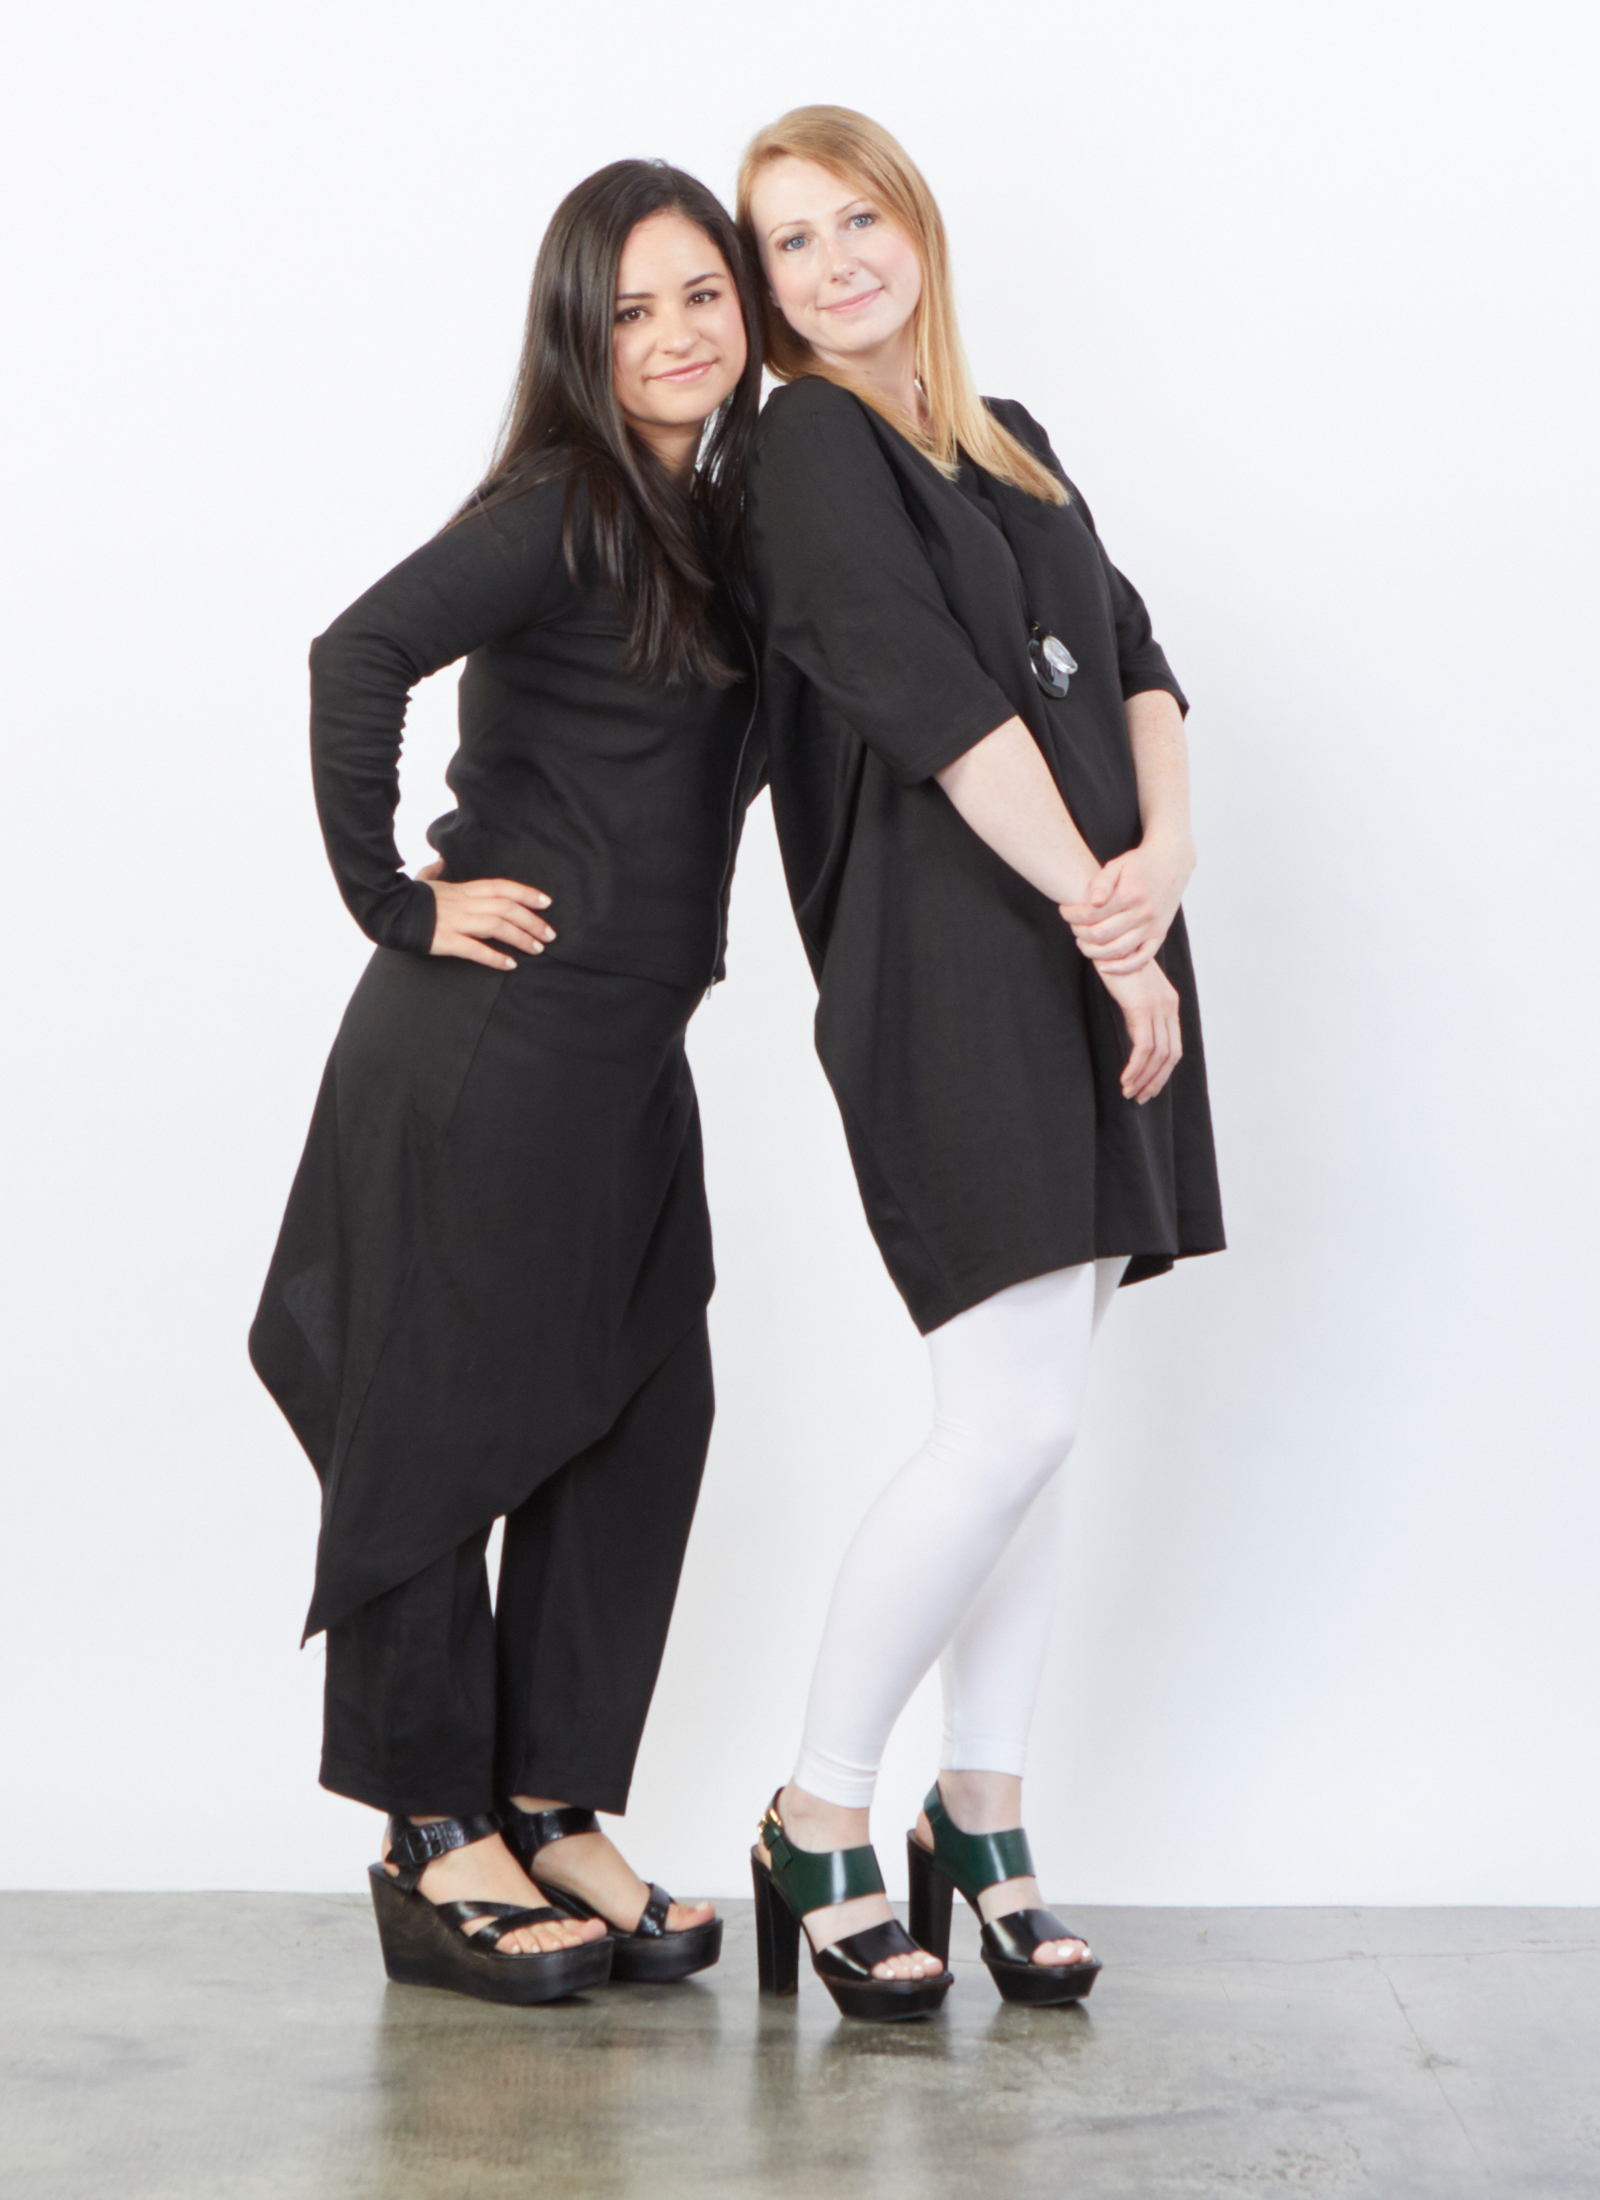 Betz Jacket, Sofia Pant, Conrad Tunic in Black Ready for Bologna, Legging in White Bamboo Cotton